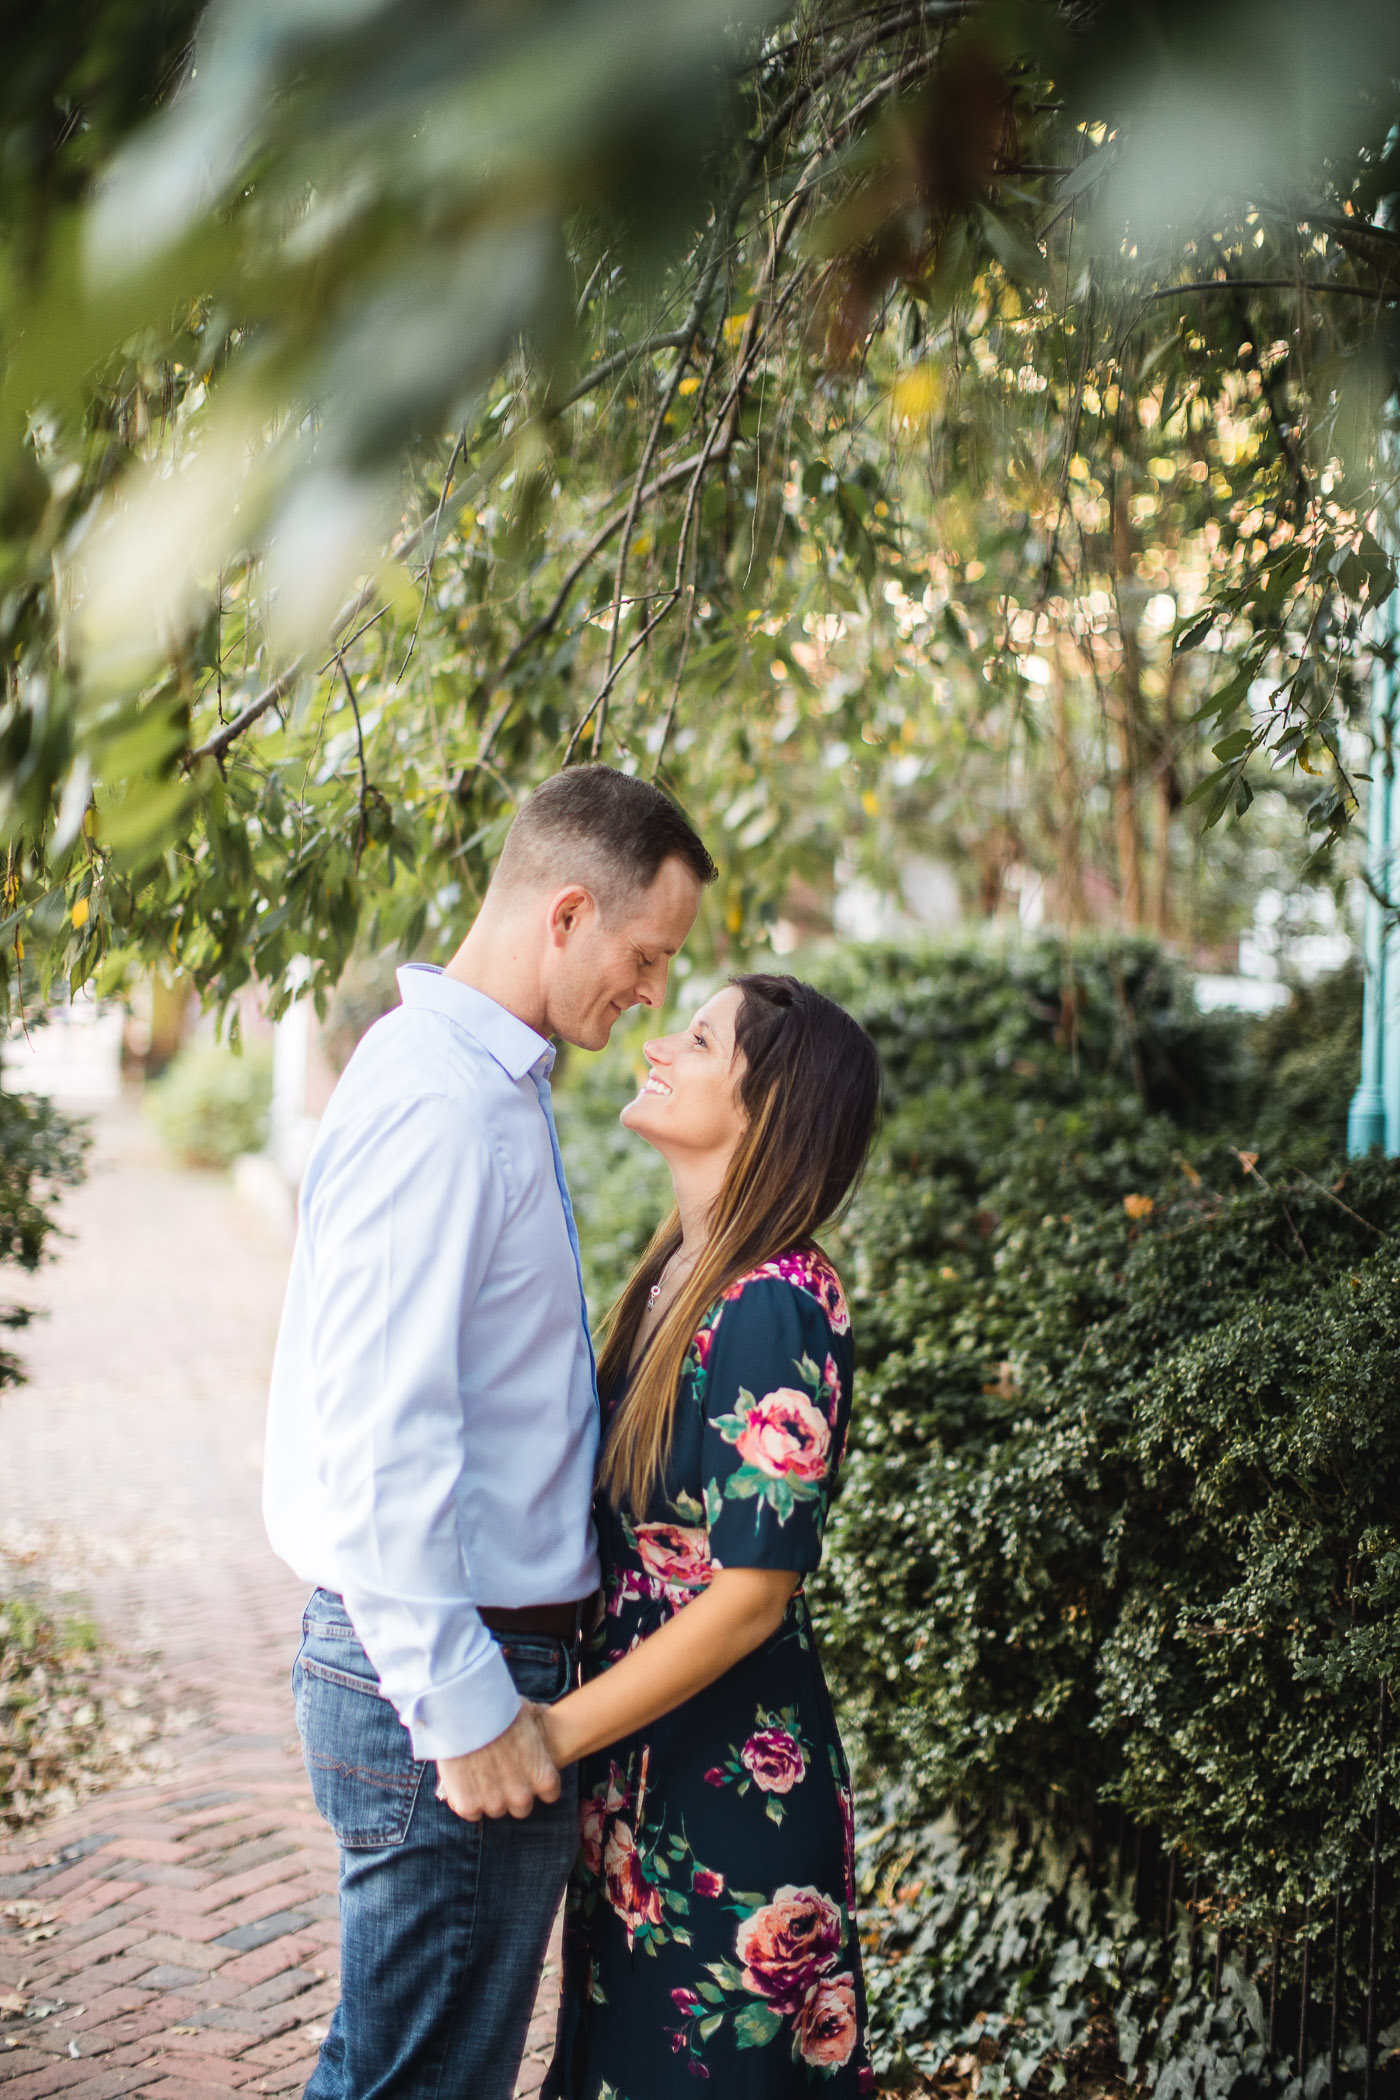 Hand & Hand & Paw Engagement Session on the Streets of Annapolis 14